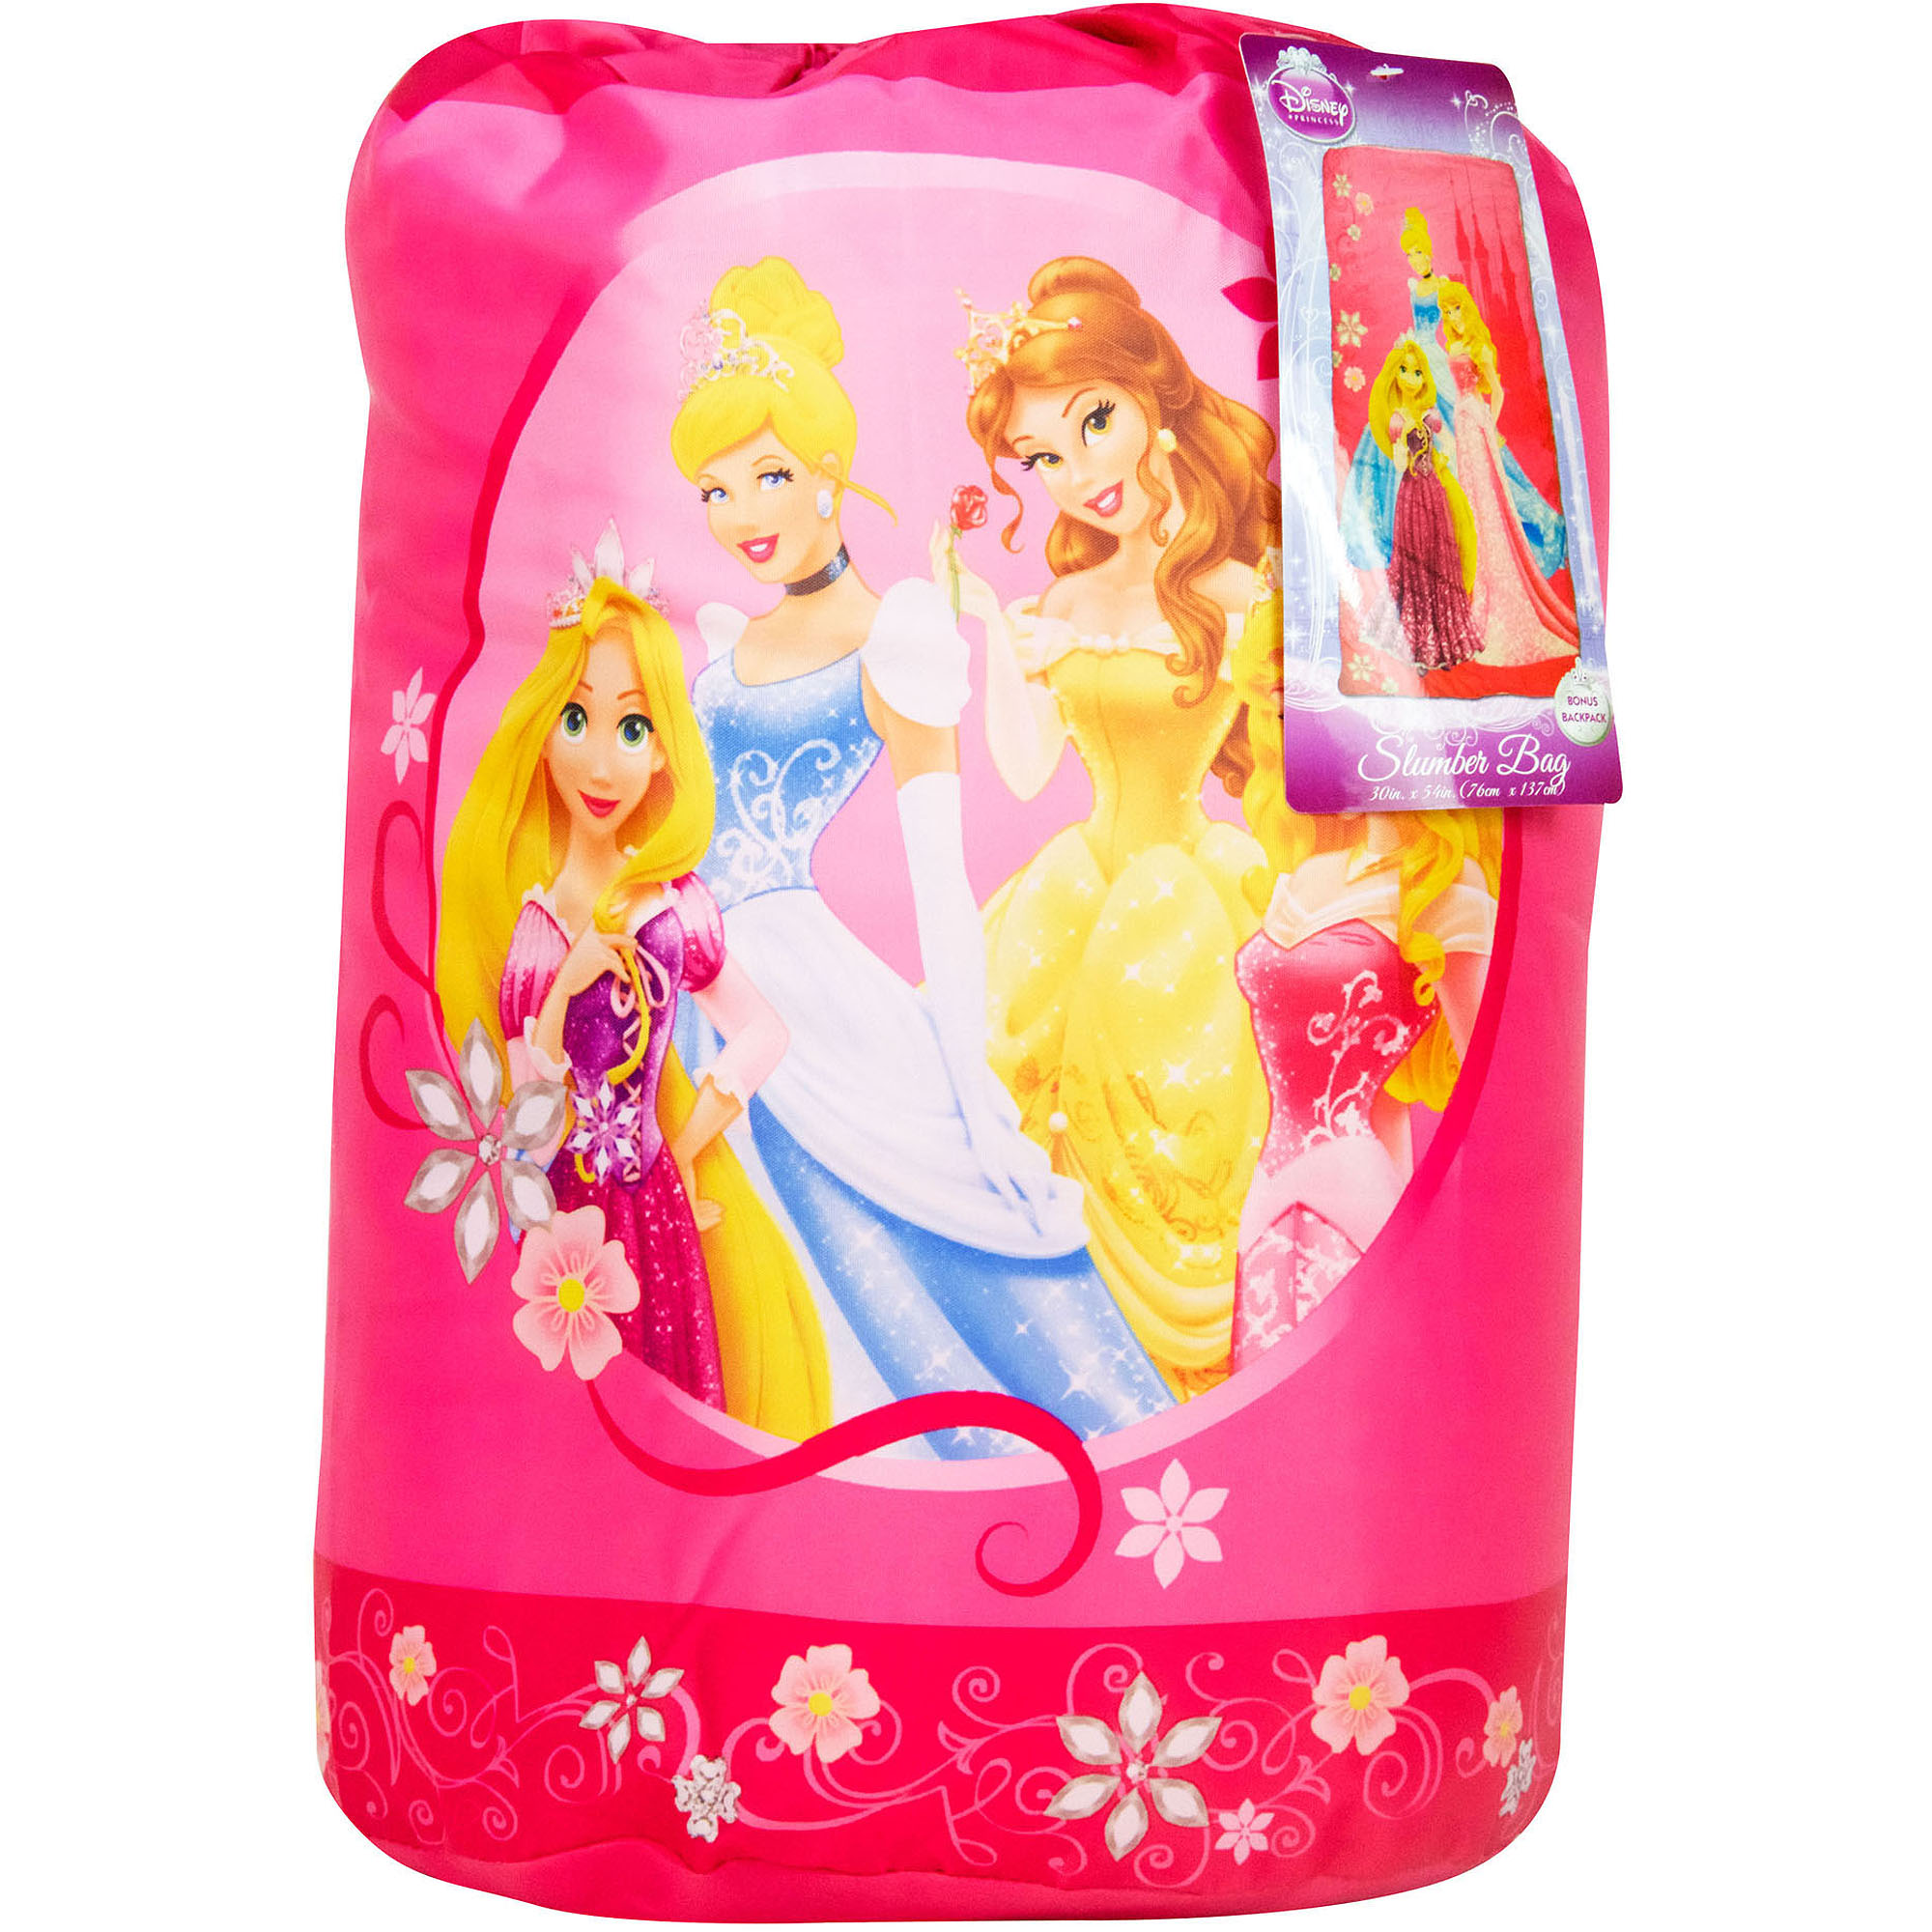 Disney Princess Tiara 'N Jewels Slumber Bag